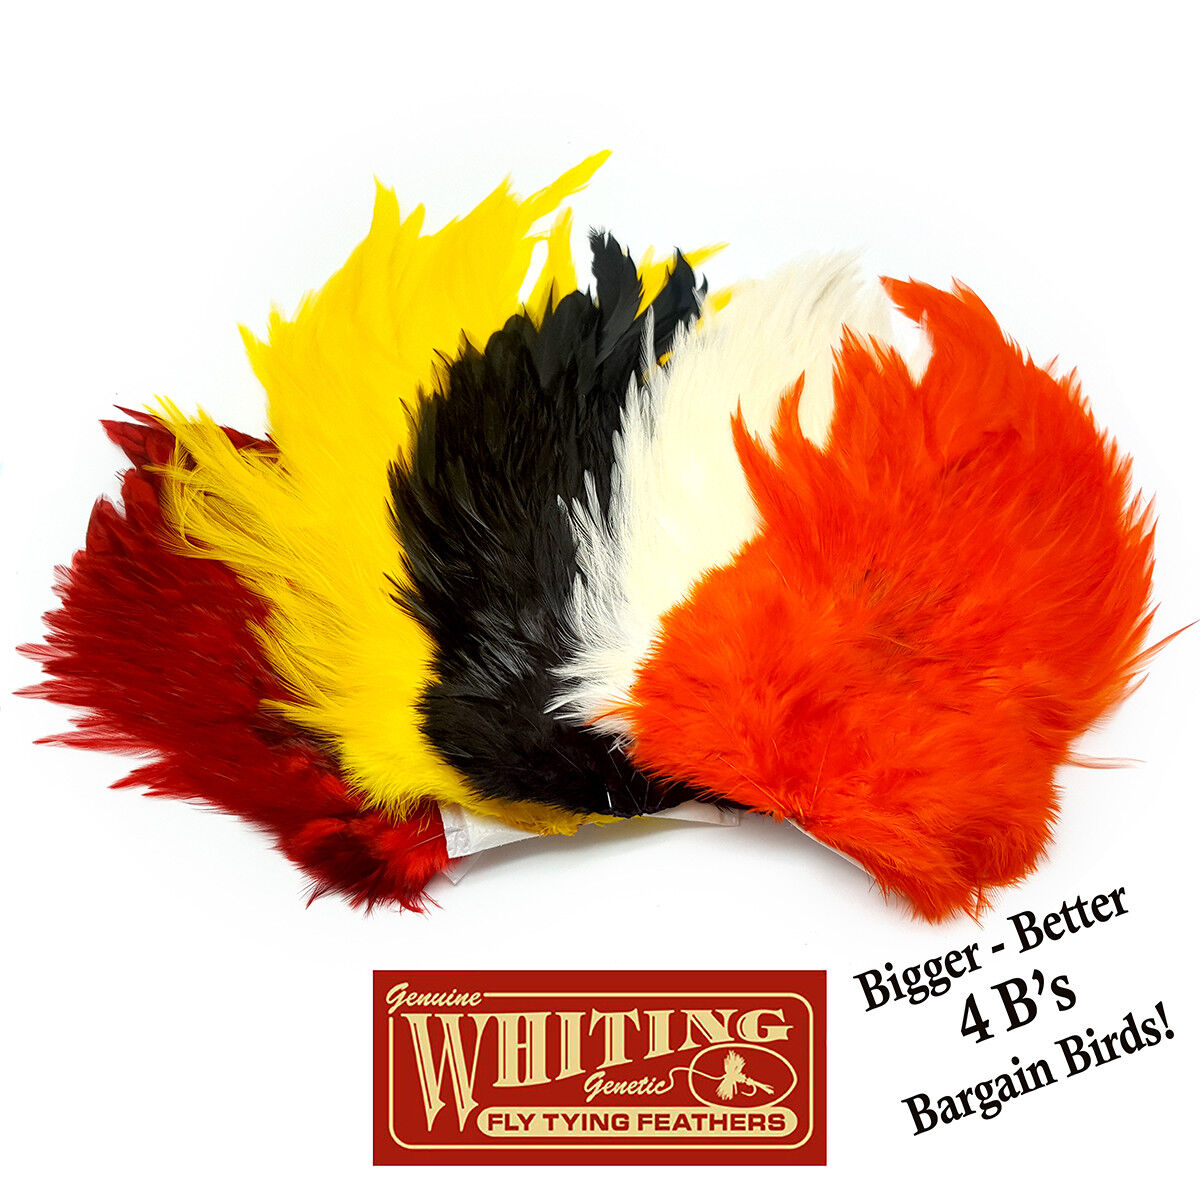 WHITING FARMS 4 B 's Rooster Saddle-diverses couleurs fly tying tying fly plusieurs boucliers Plumes d7a9f1